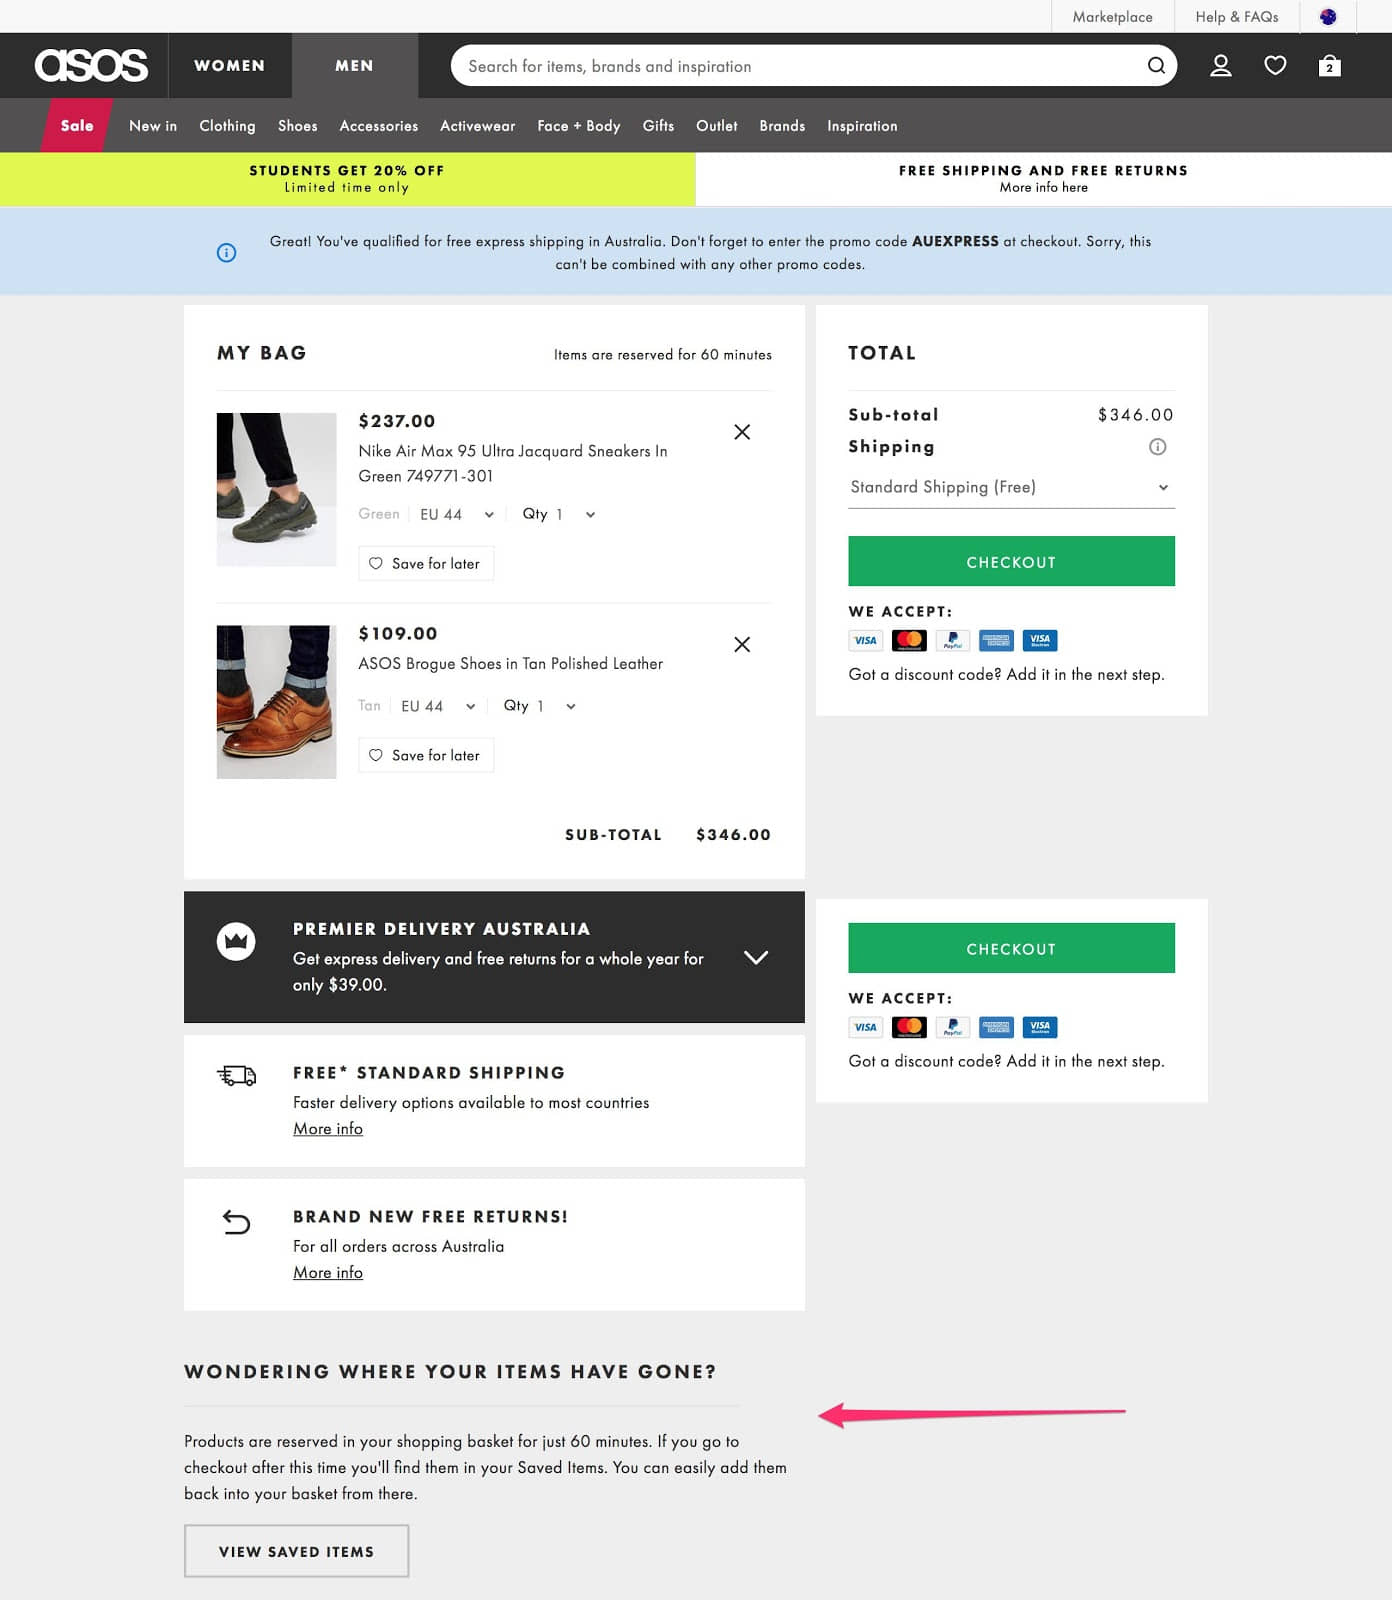 Show abandoned shopping cart items to user.